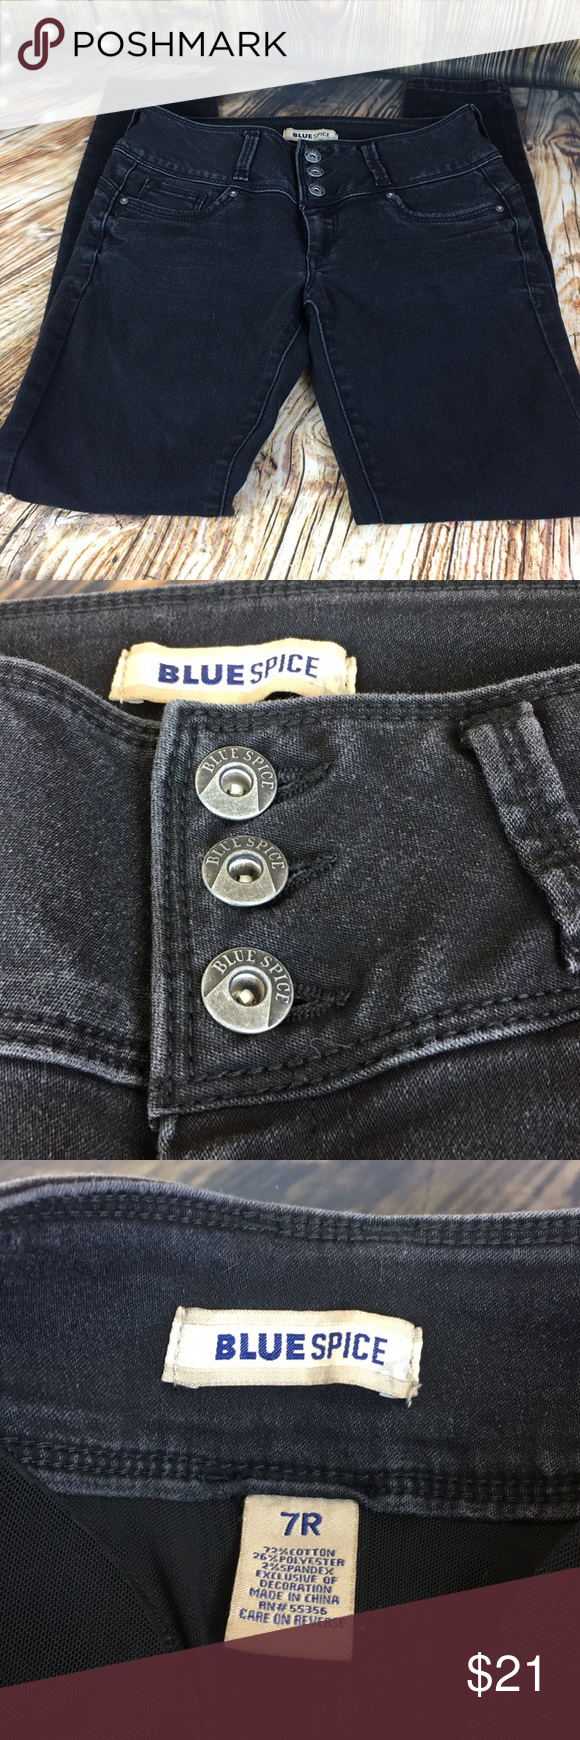 527232bba68 Blue spice black denim booty jeans sz 7 These have butt pads to enhance  your back side Blue Spice Jeans Skinny